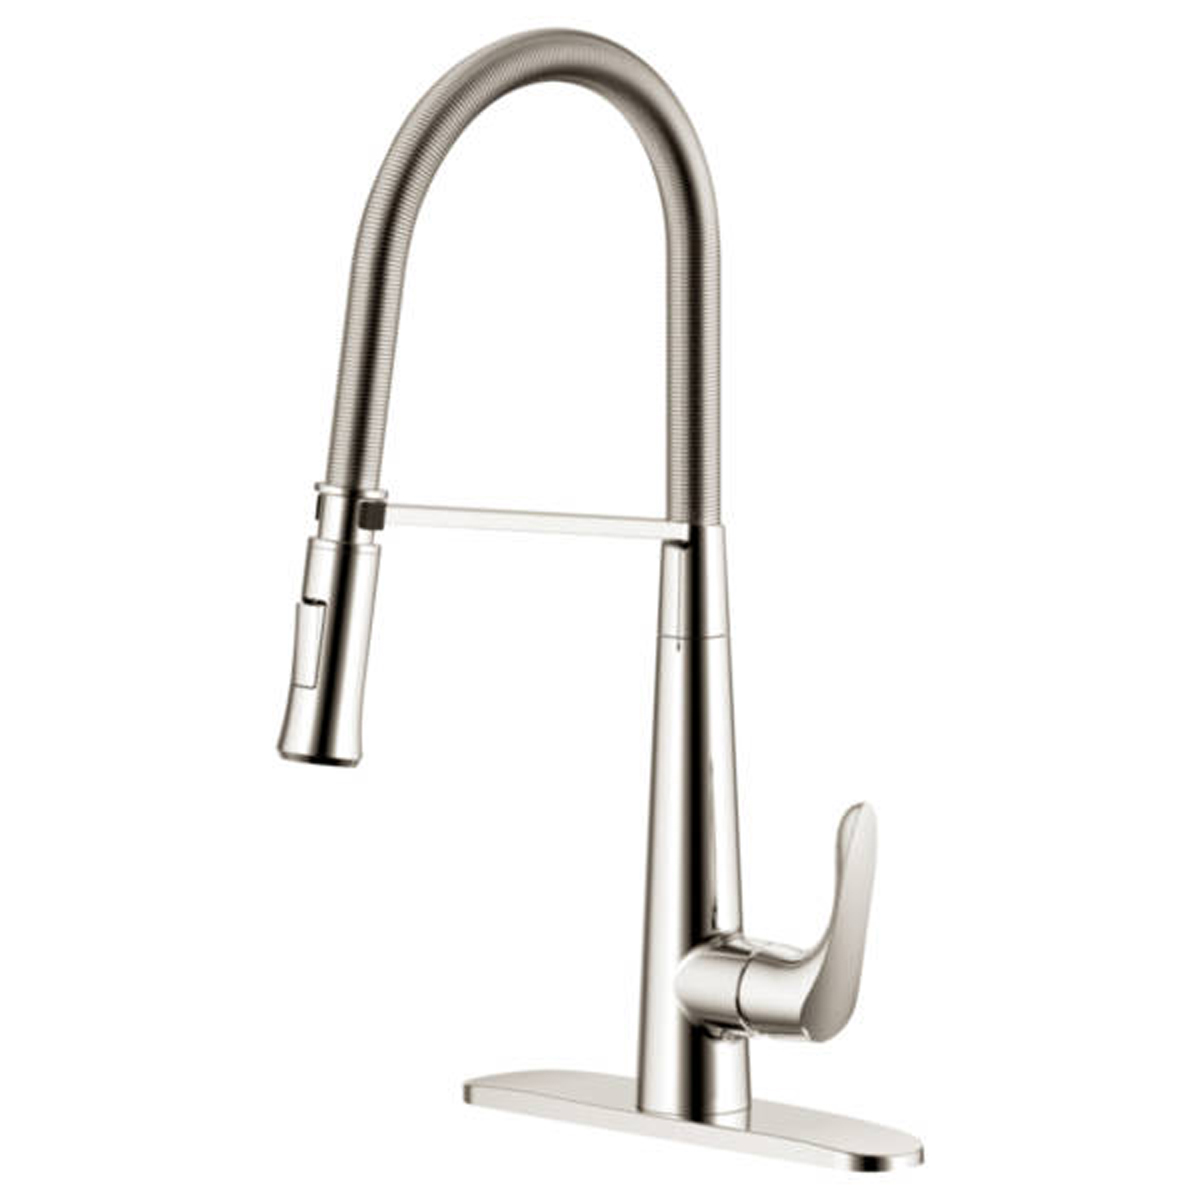 Freendo Coil Pull Down Kitchen Faucet Brushed Nickel Heeby S Surplus Inc